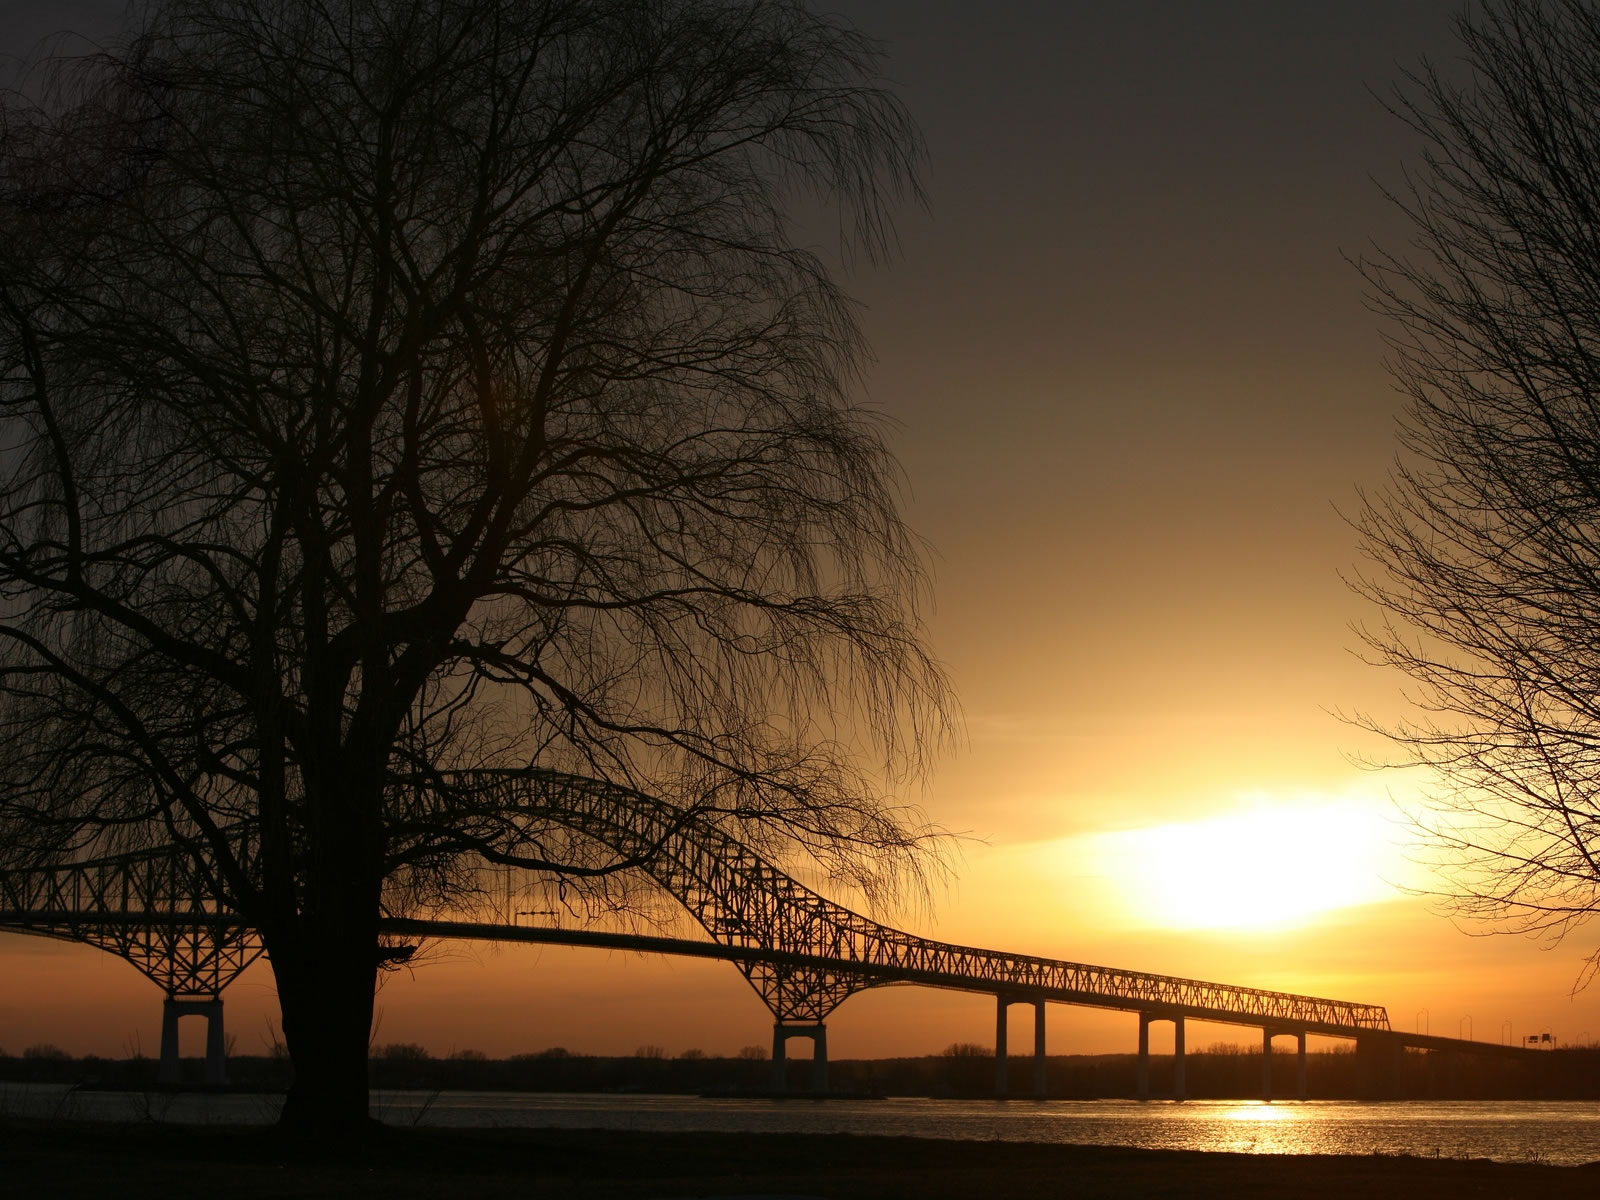 Amazing 3d Wallpapers For Mobile Sunset Over A Bridge Wallpapers Sunset Over A Bridge